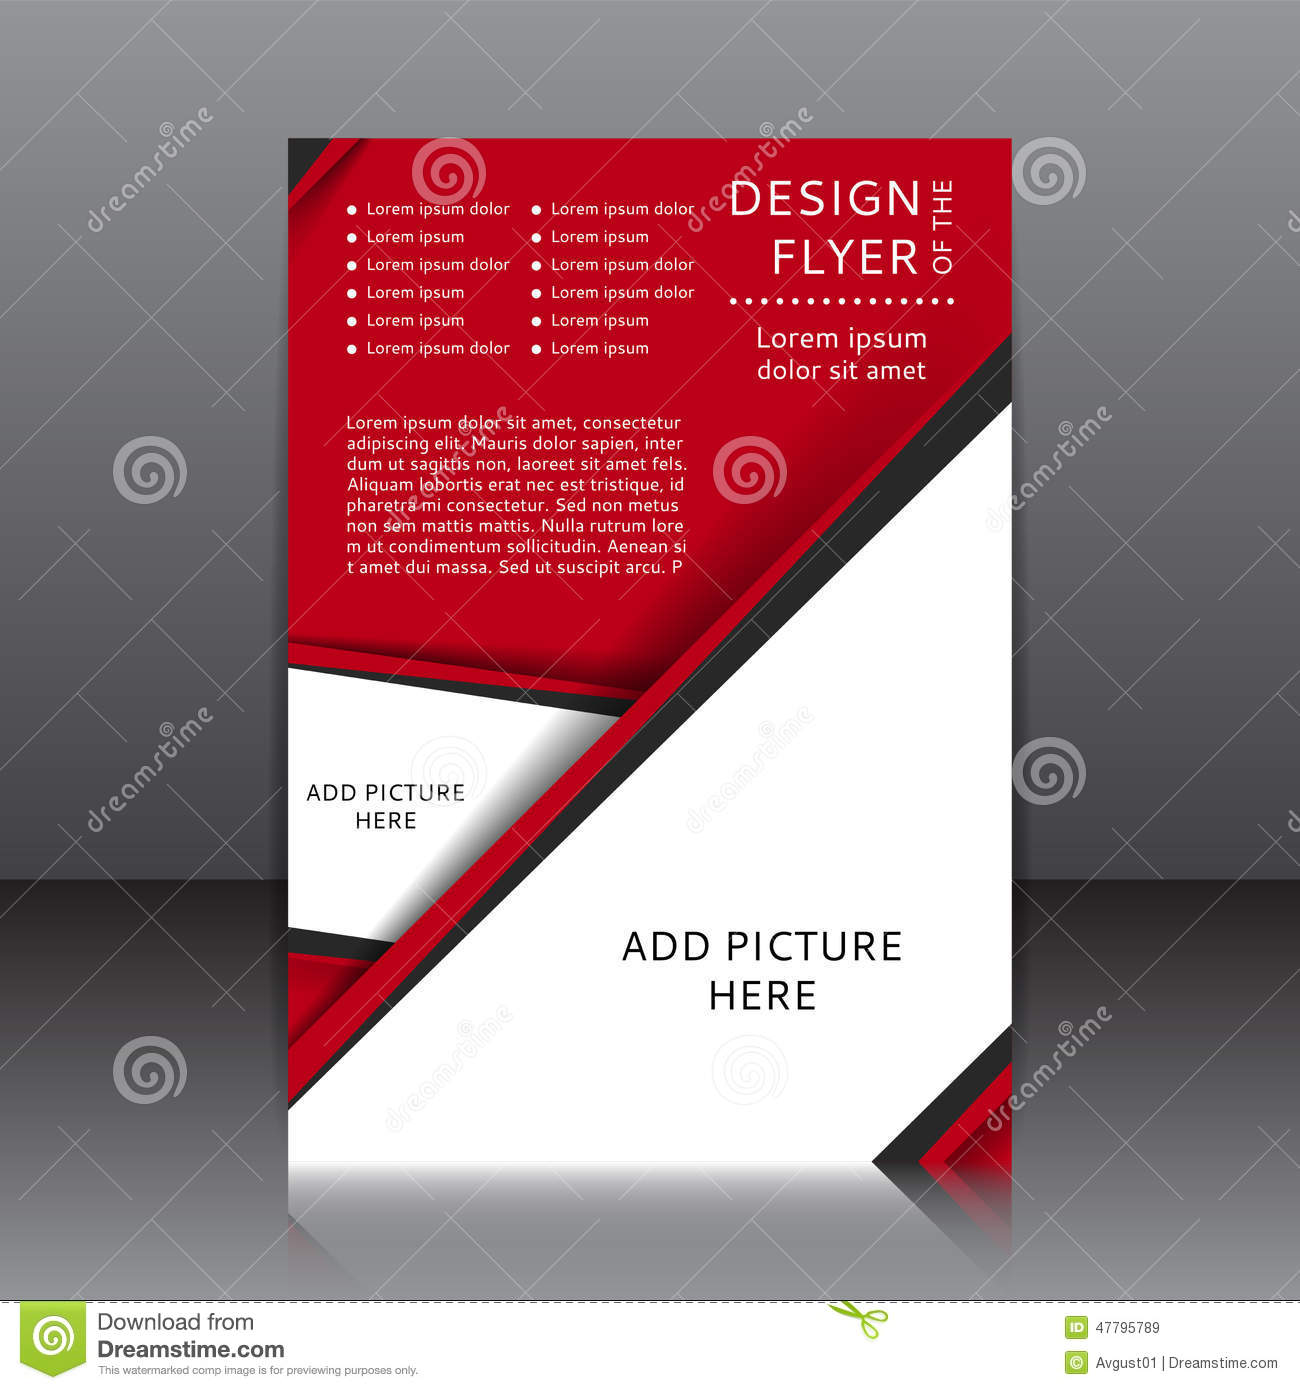 Vector design of the red flyer with black elements and places for images